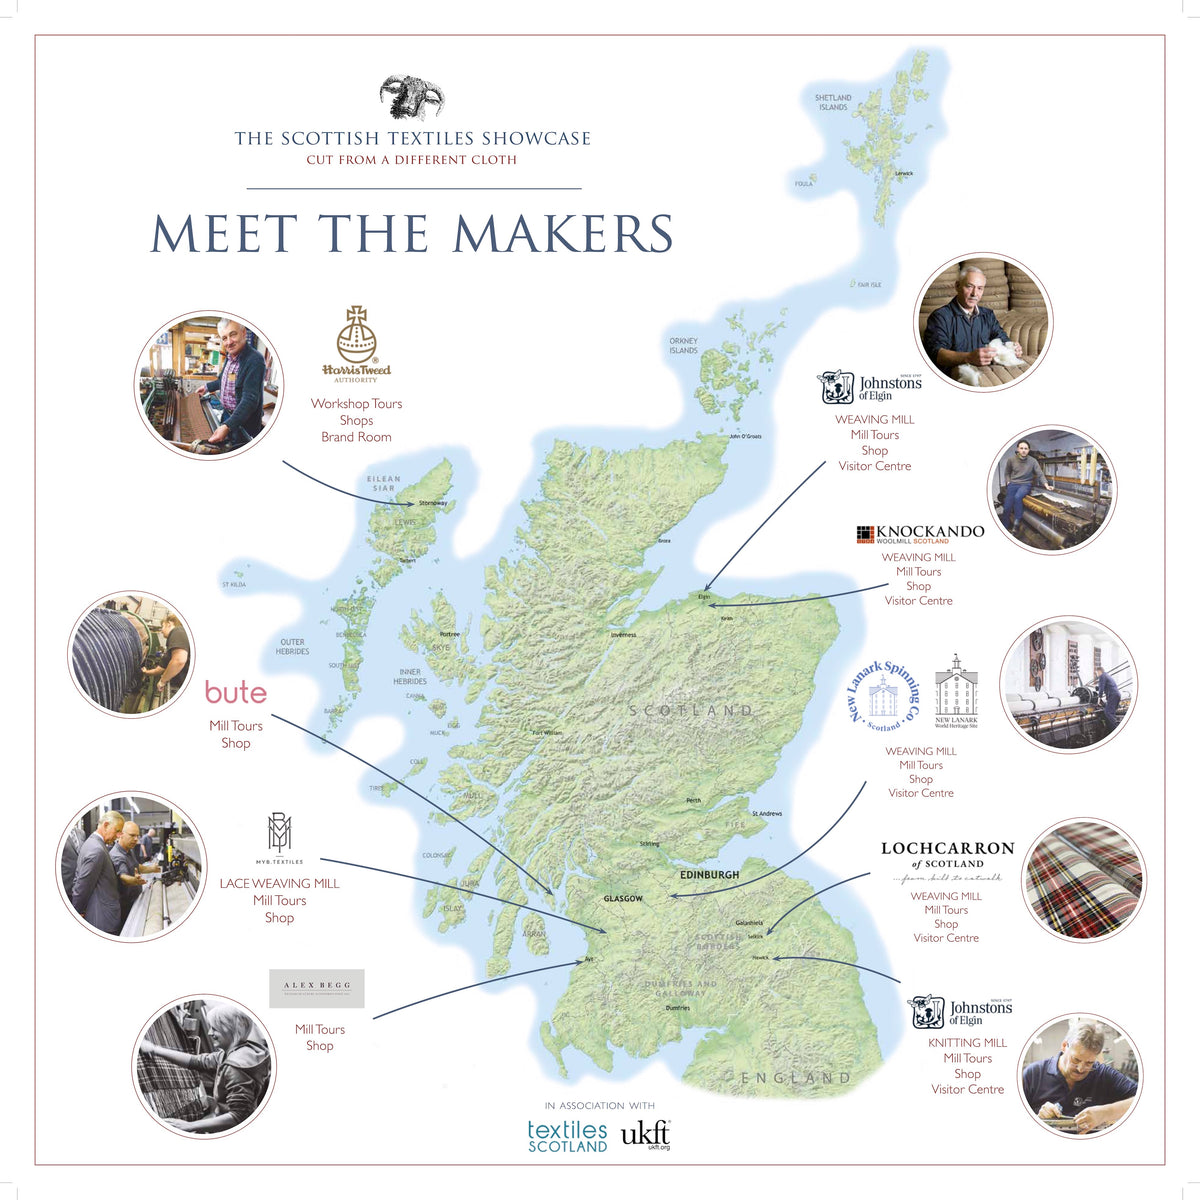 Meet the Makers, Scottish Textiles Tours